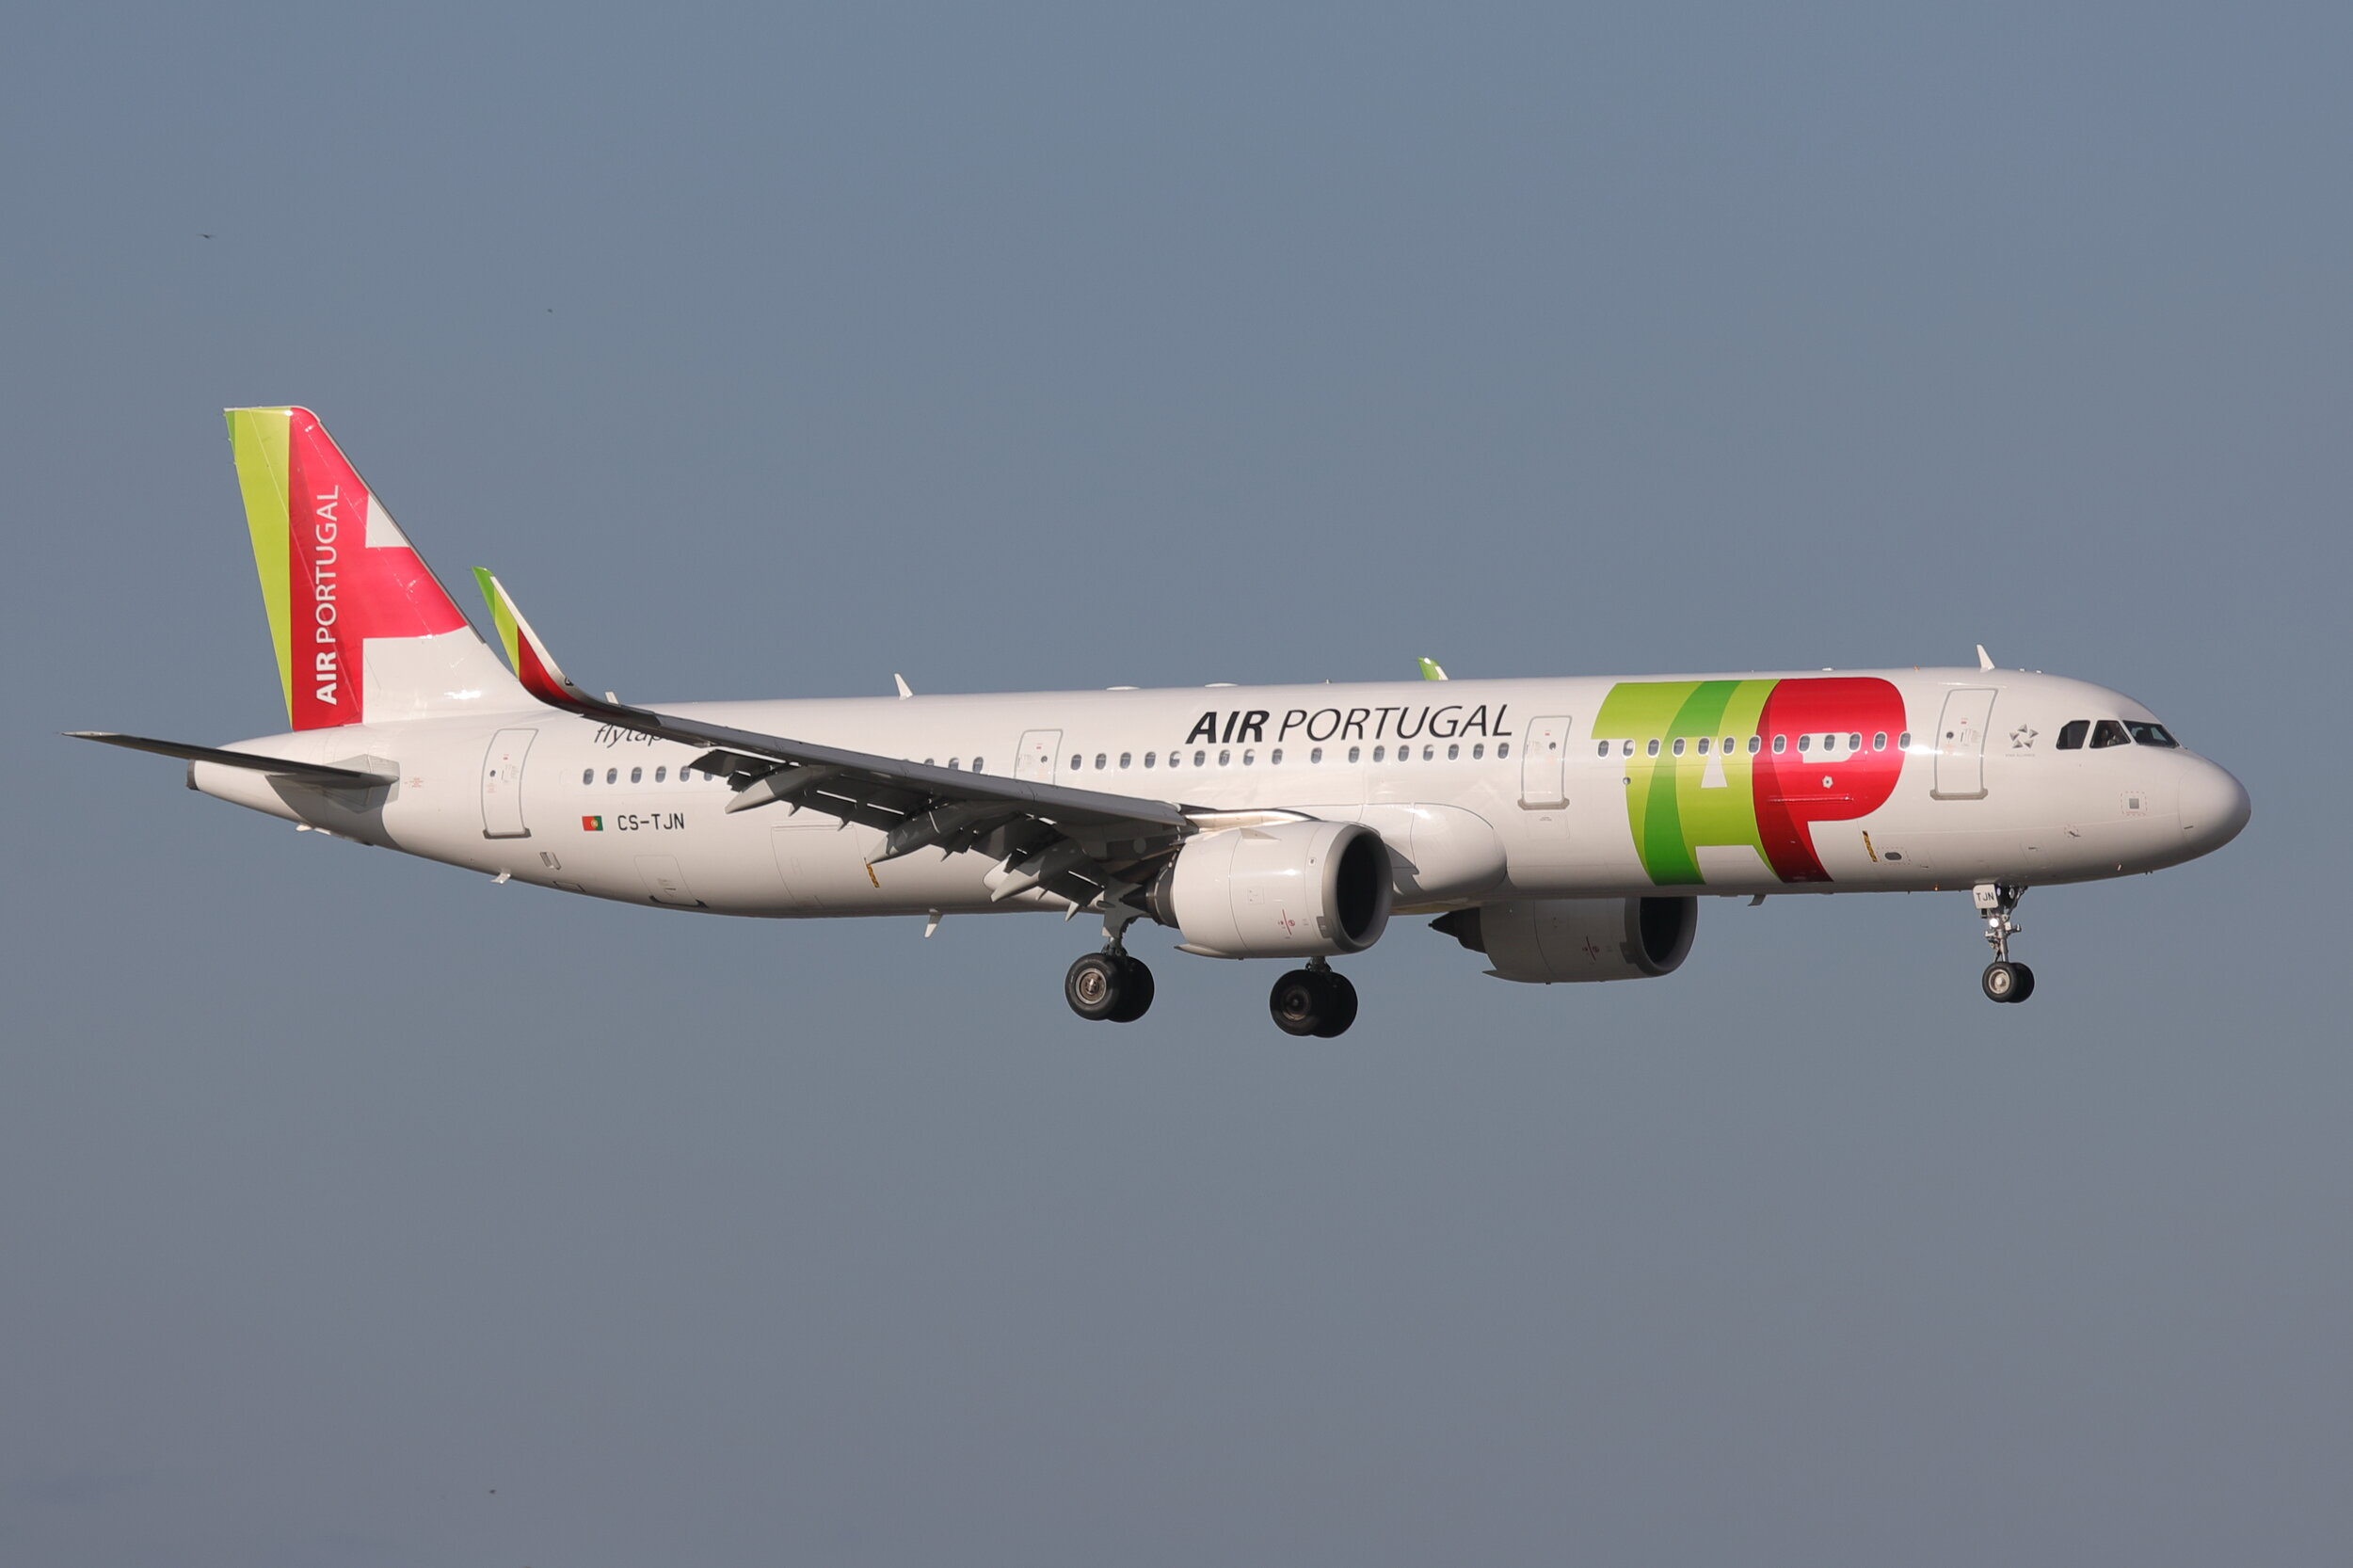 Air Portugal A321N CS-TJN was nicely captured on short final to Runway 05 Left by Steve Ashworth on Friday 8th November.